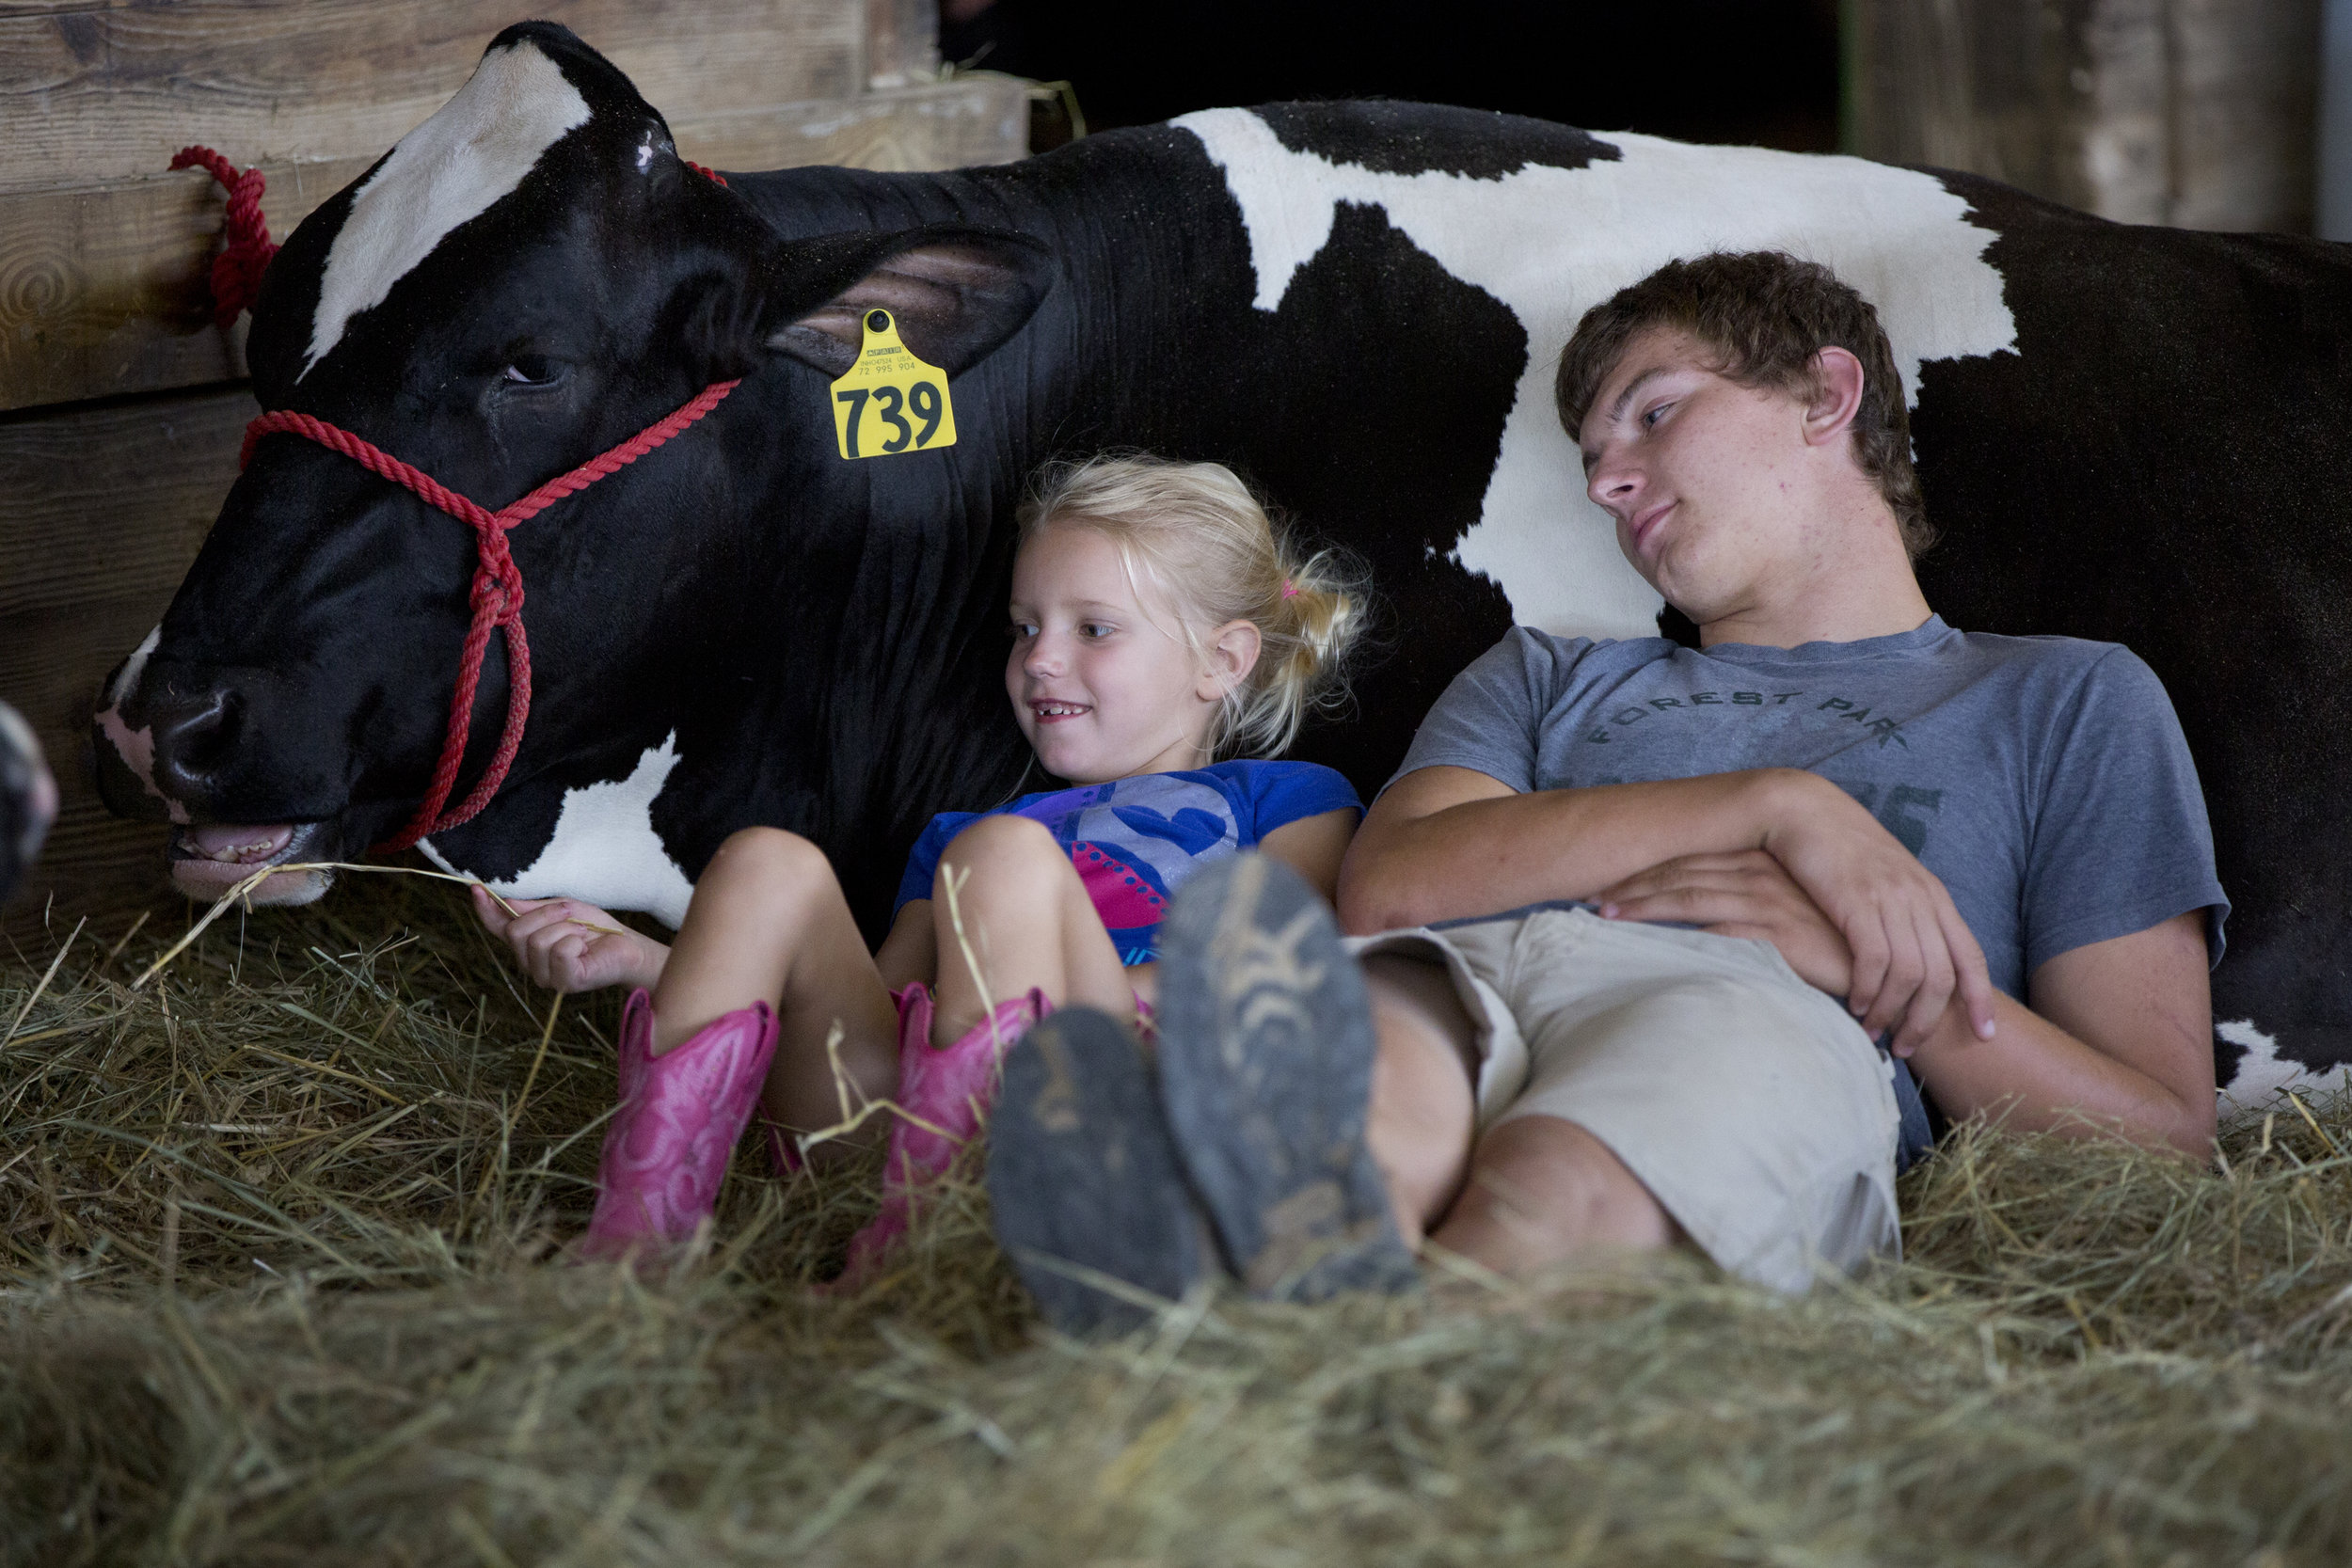 Kensley Gogel of St. Henry, 6, fed hay to one of dairy cows that Zach Cline of Kyana, 18, showed this year at the Dubois County 4-H Fairgrounds in Bretzville on Wednesday.